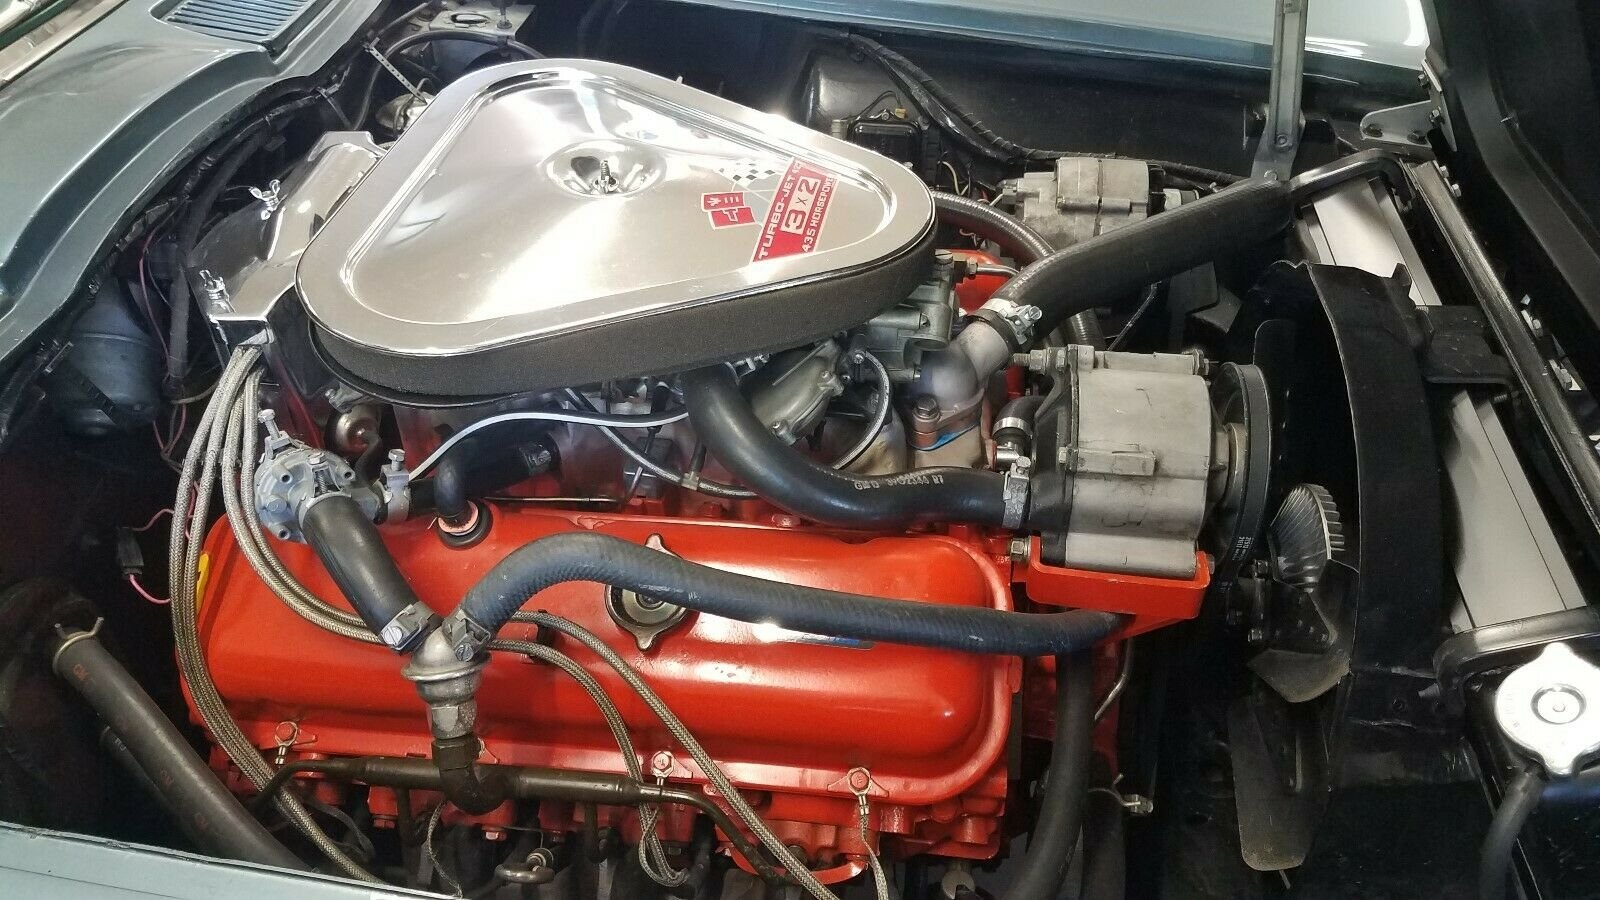 1967 Corvette coupe L71 427cui V8 - Tri carb 4 speed ! For Sale (picture 4 of 6)